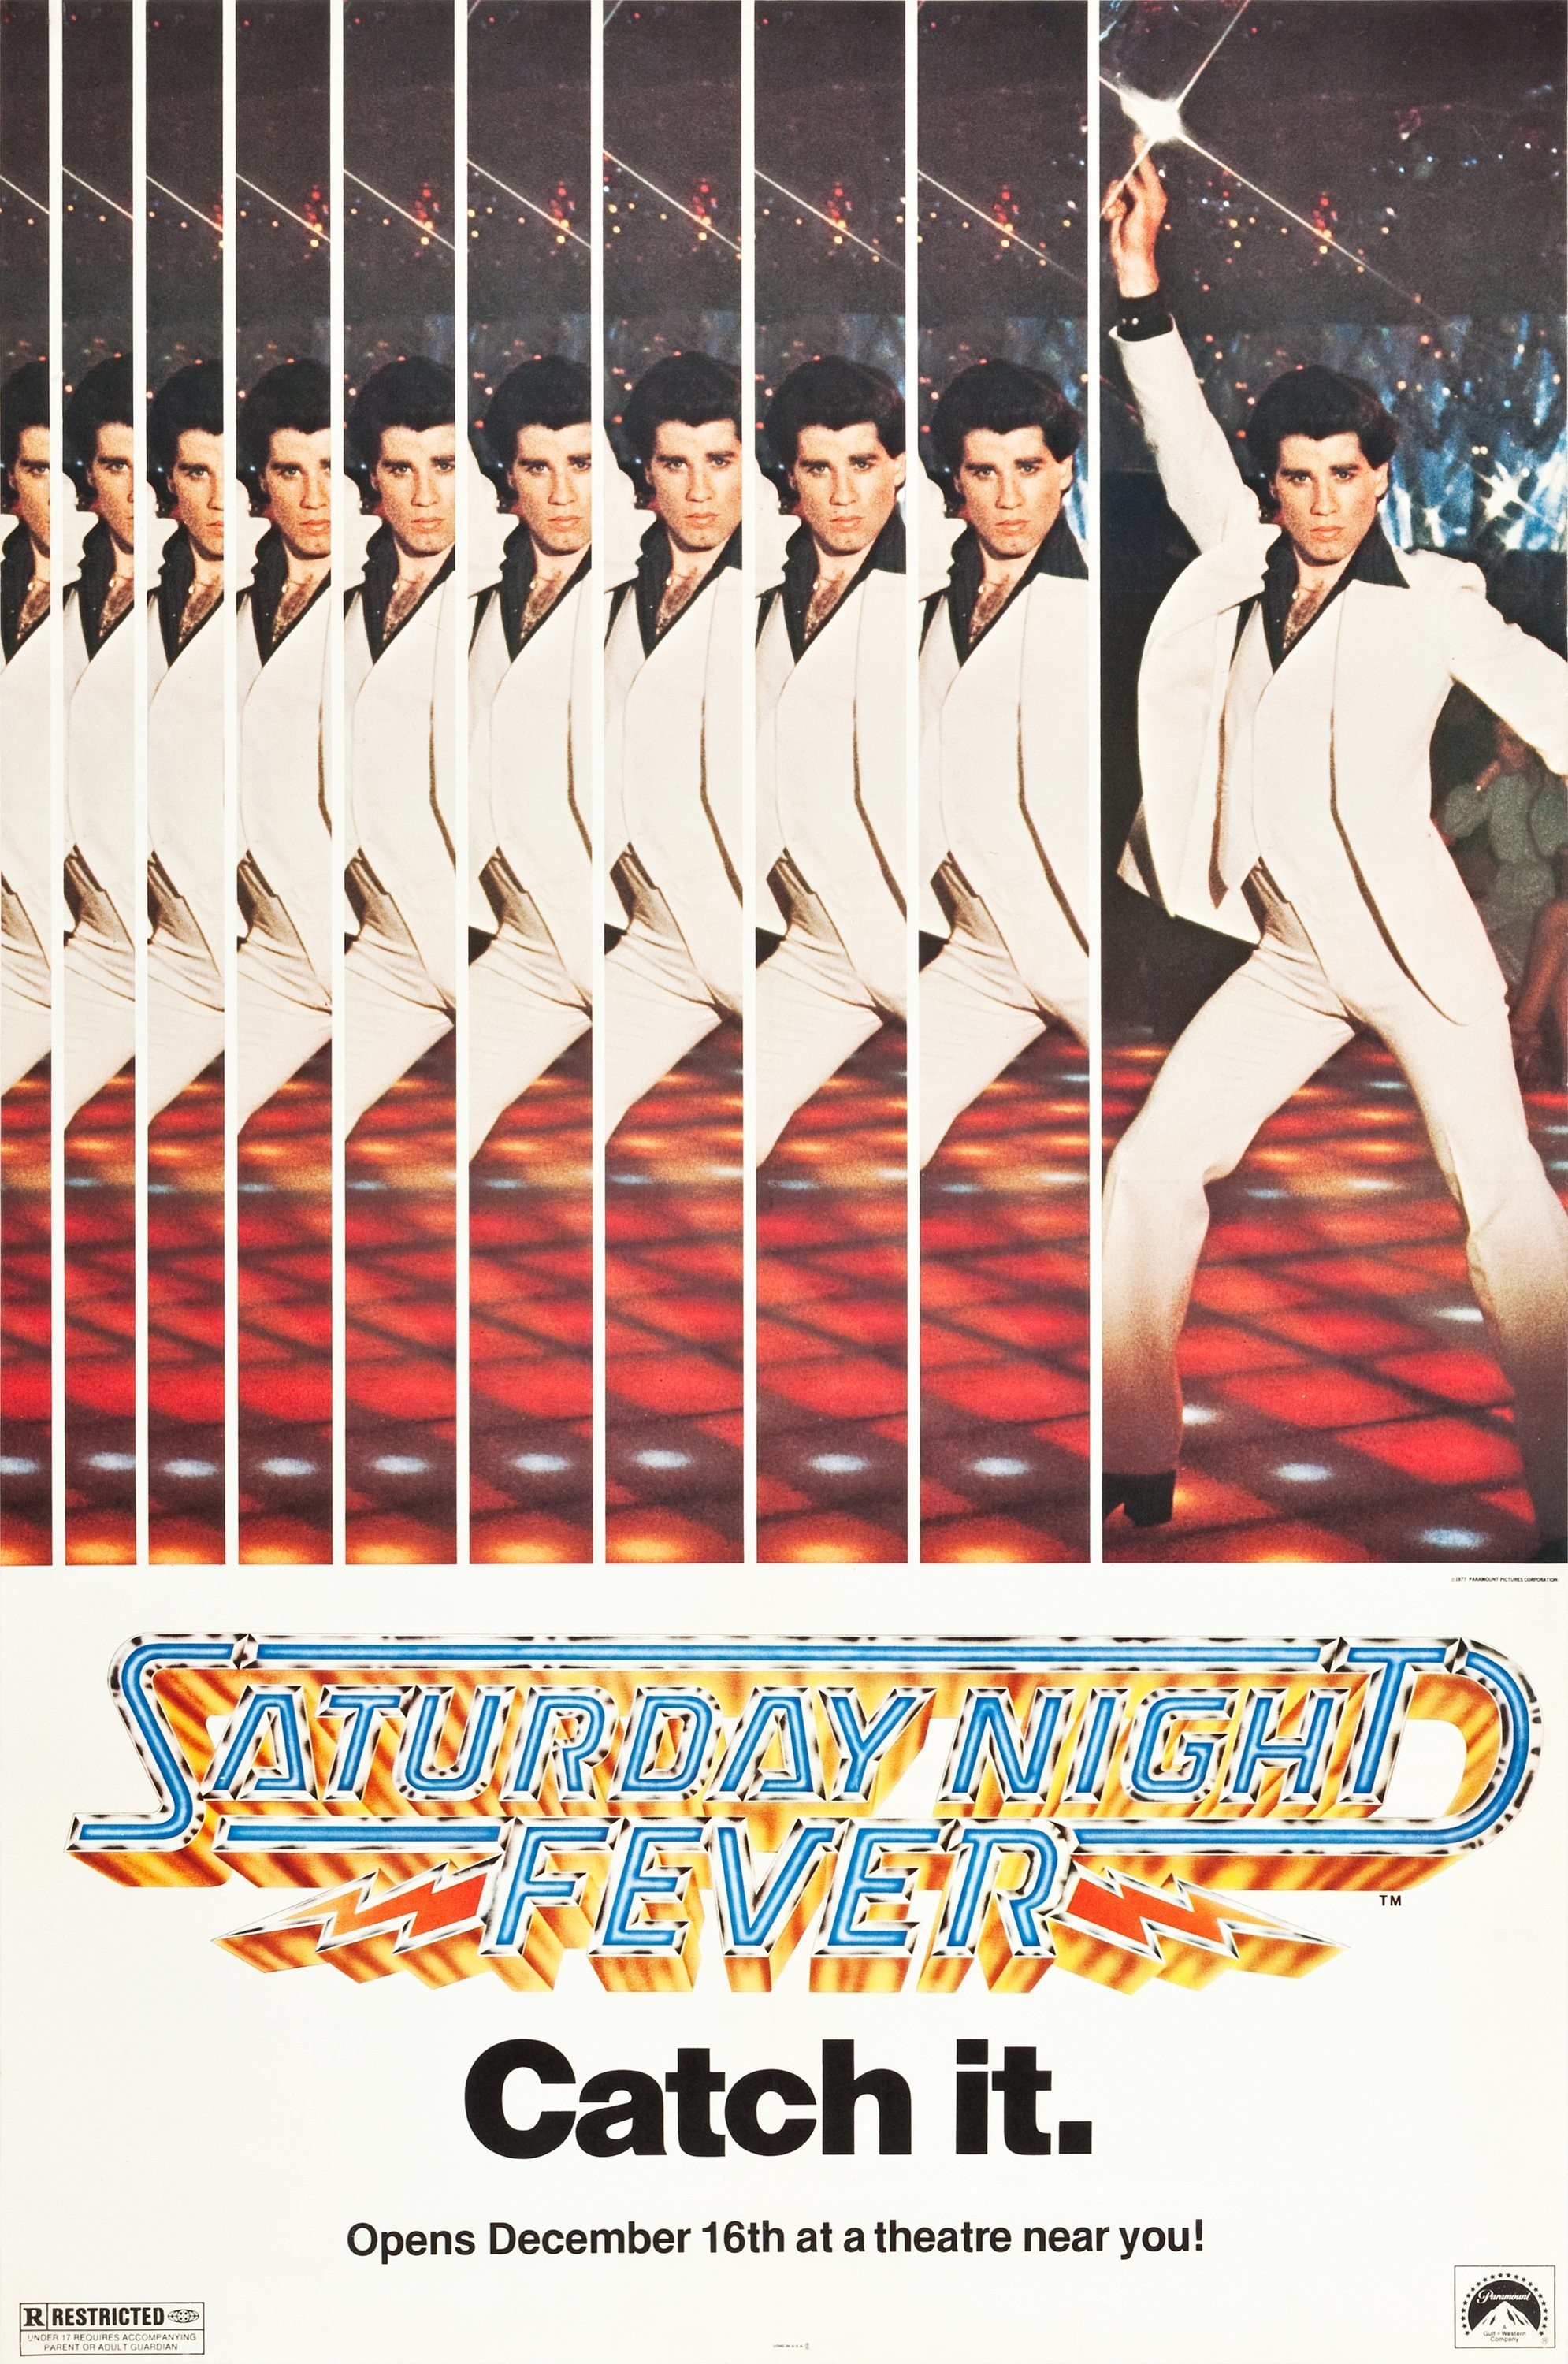 1990x3000 Poster of Saturday Night Fever directed by John Badham, 1977